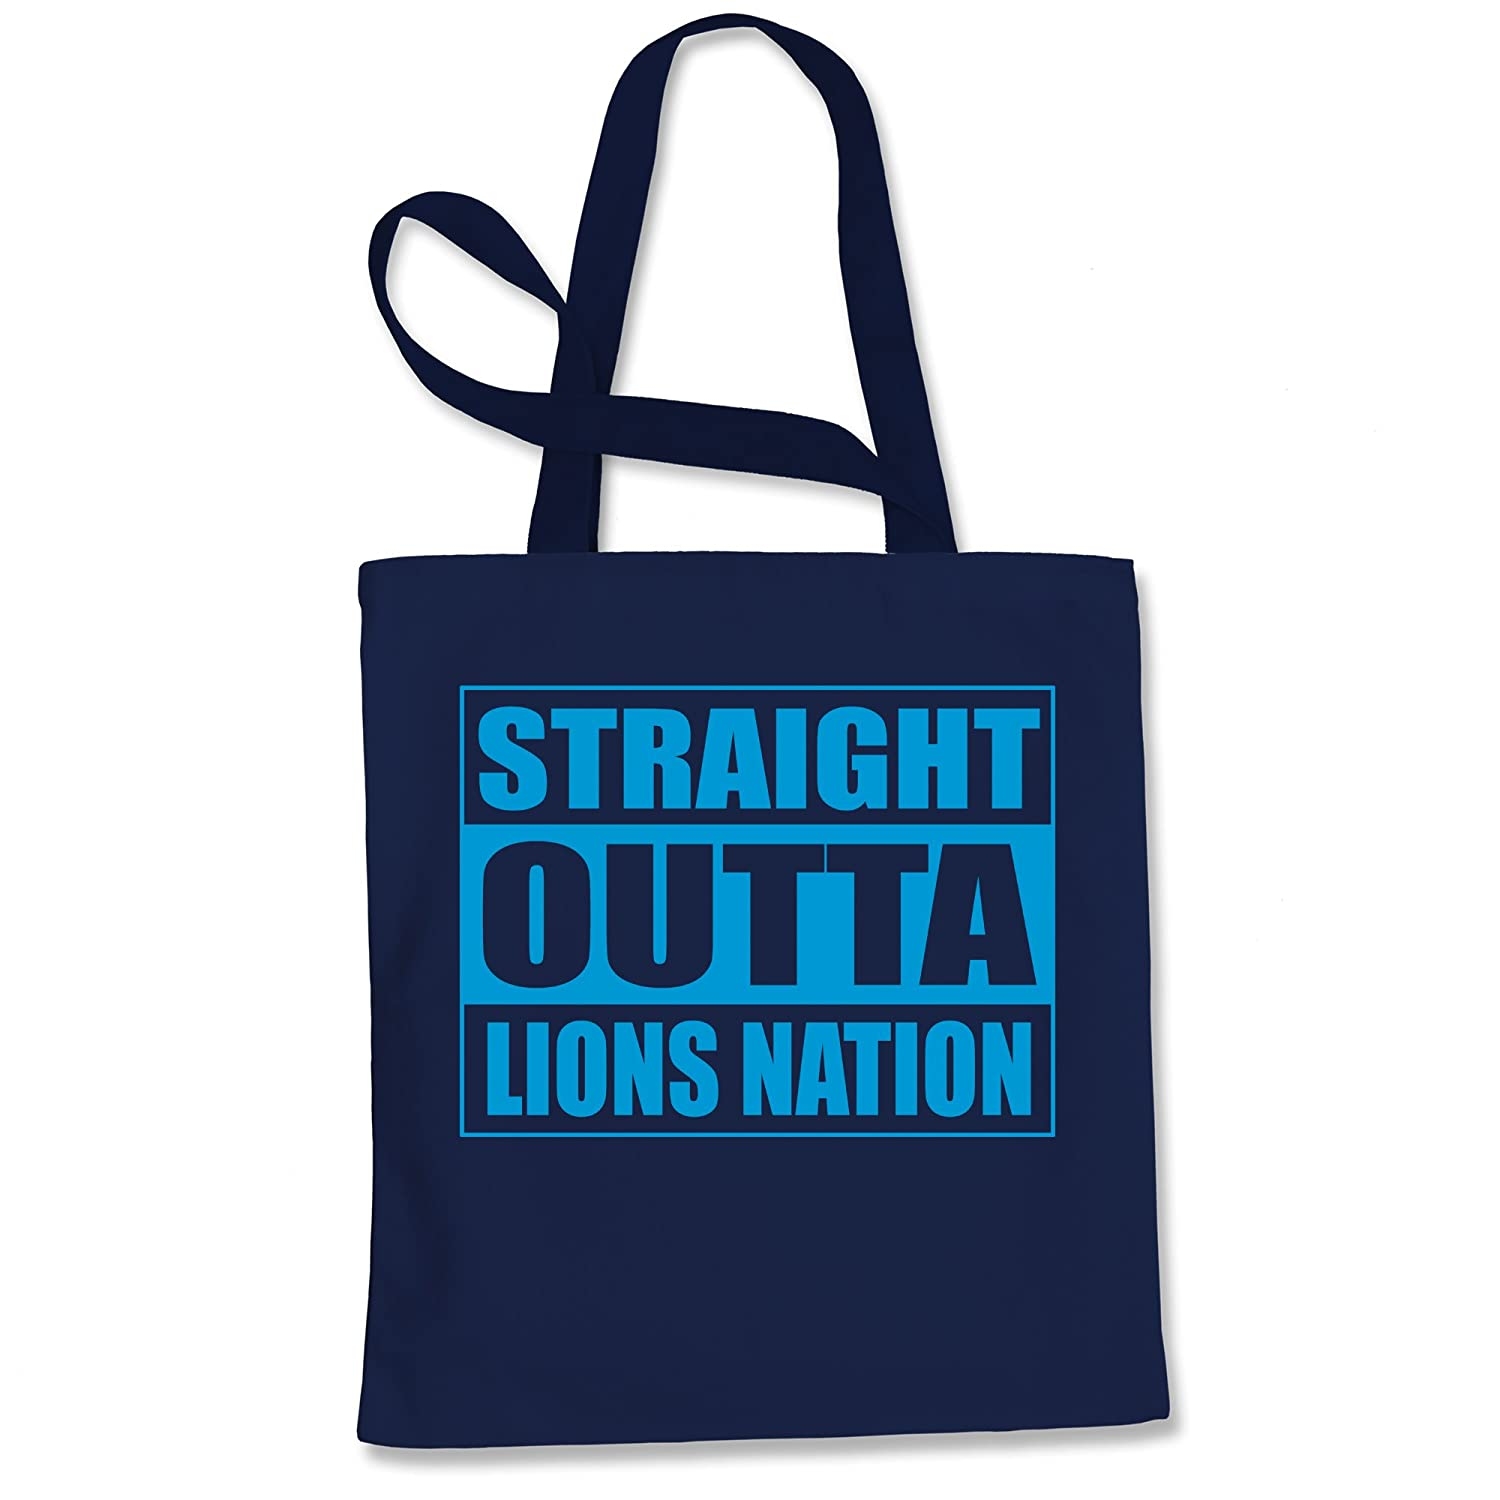 Tote Bag Straight Outta Lions Nation Football Pink Shopping Bag